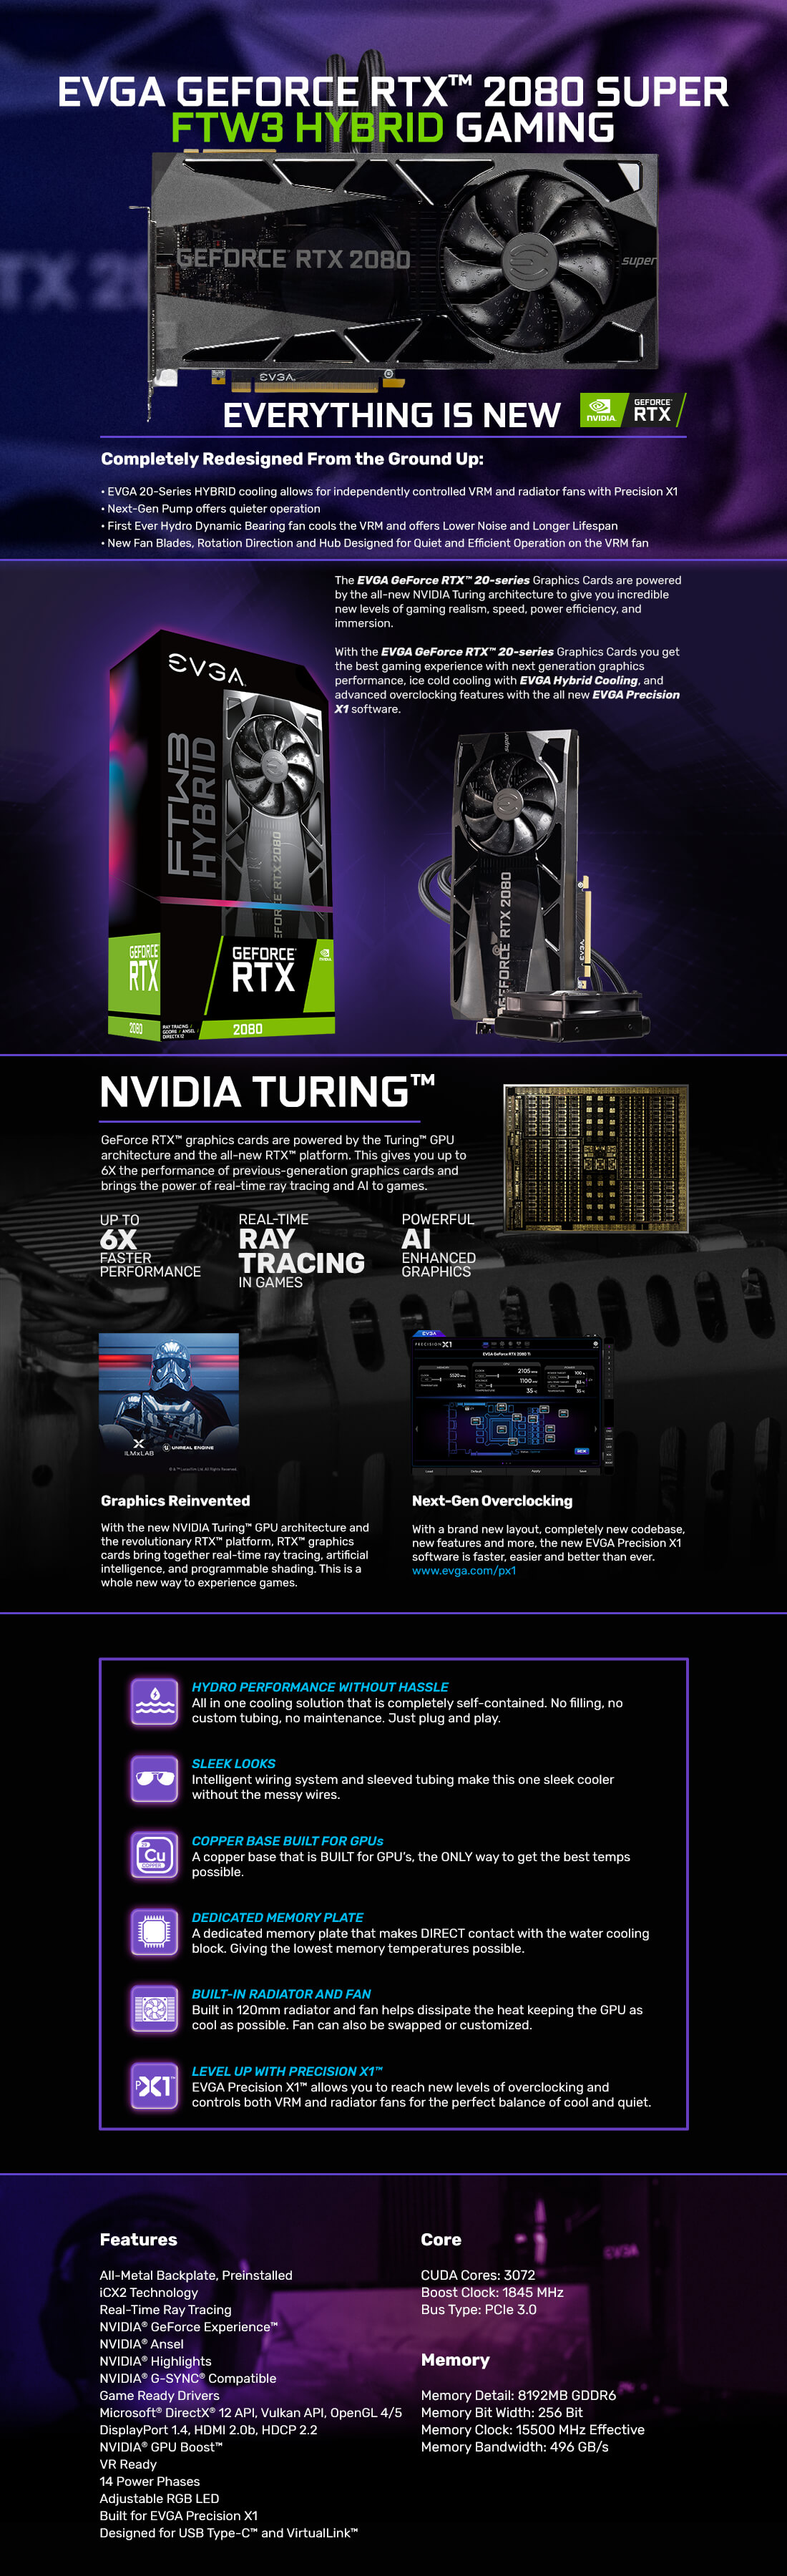 EVGA GeForce RTX 2080 Super FTW3 Hybrid Gaming 8GB Graphics Card